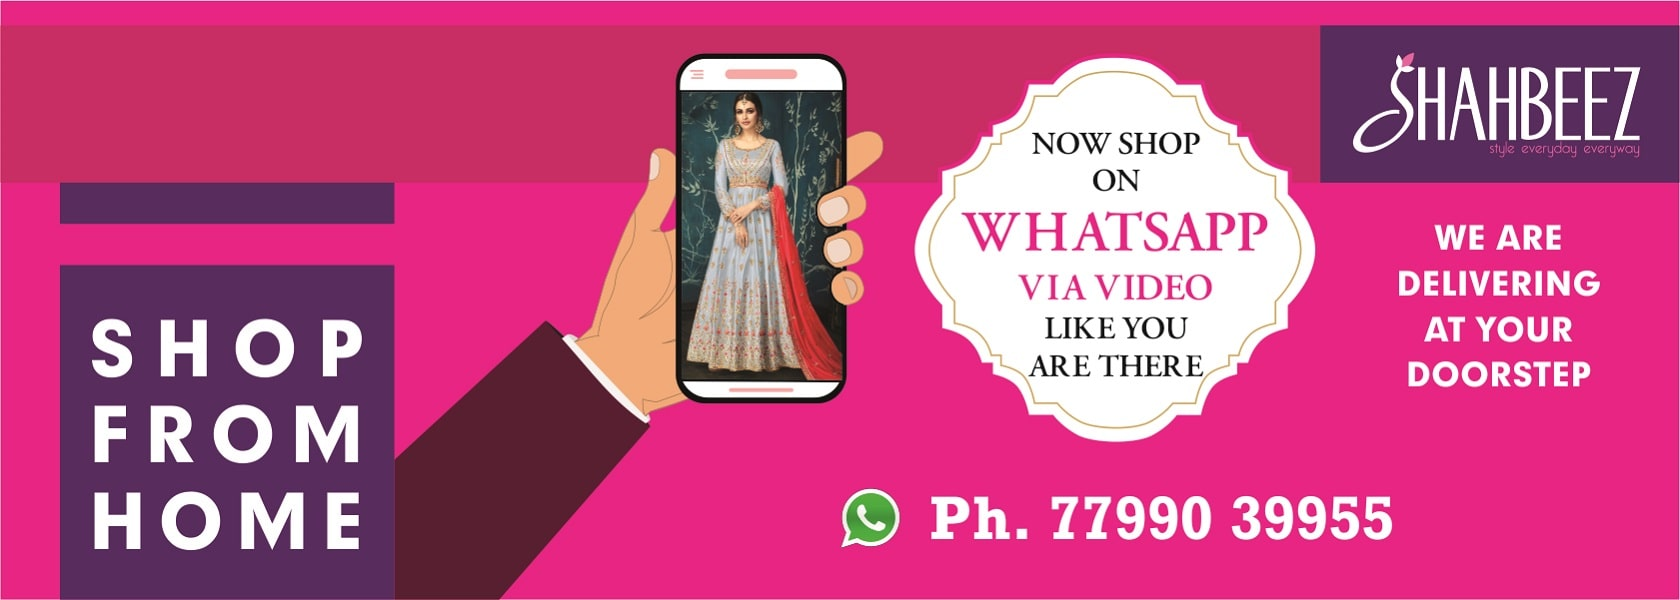 shop womens wear clothing via whatsapp video call